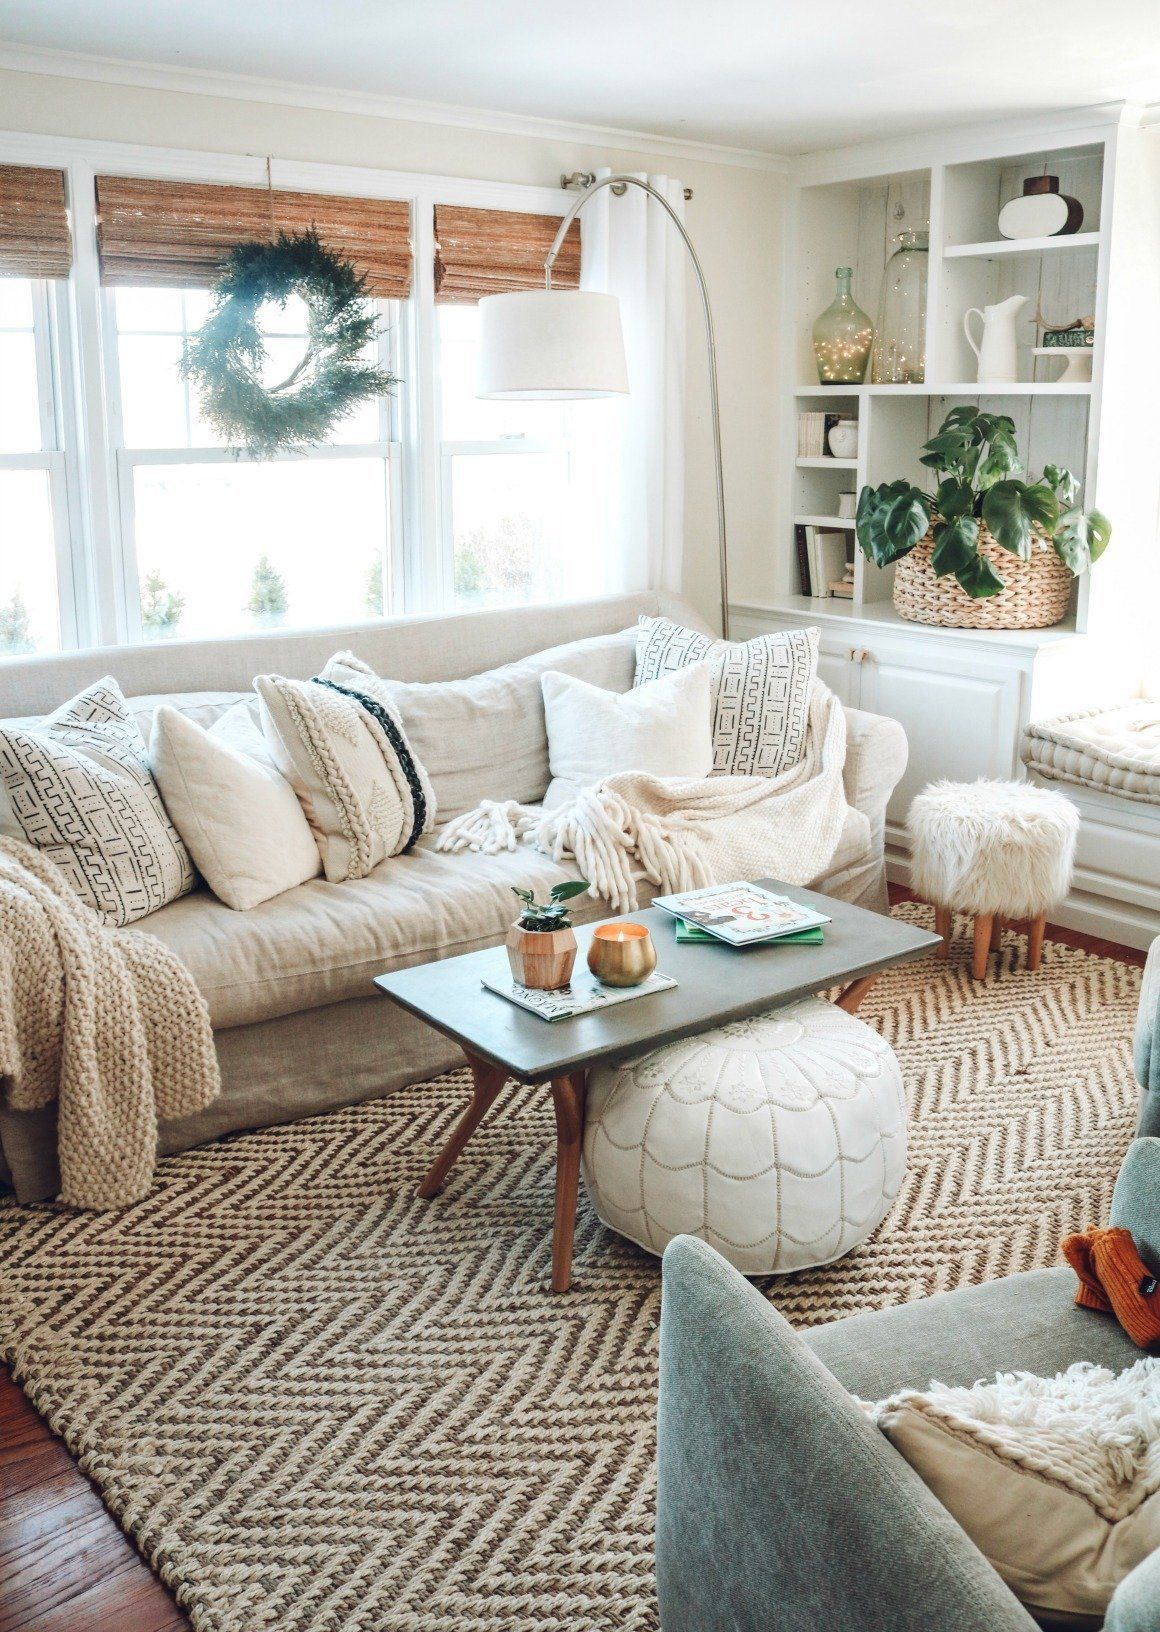 10 ways your home could look cheap nesting with grace on cozy apartment living room decorating ideas the easy way to look at your living room id=66721